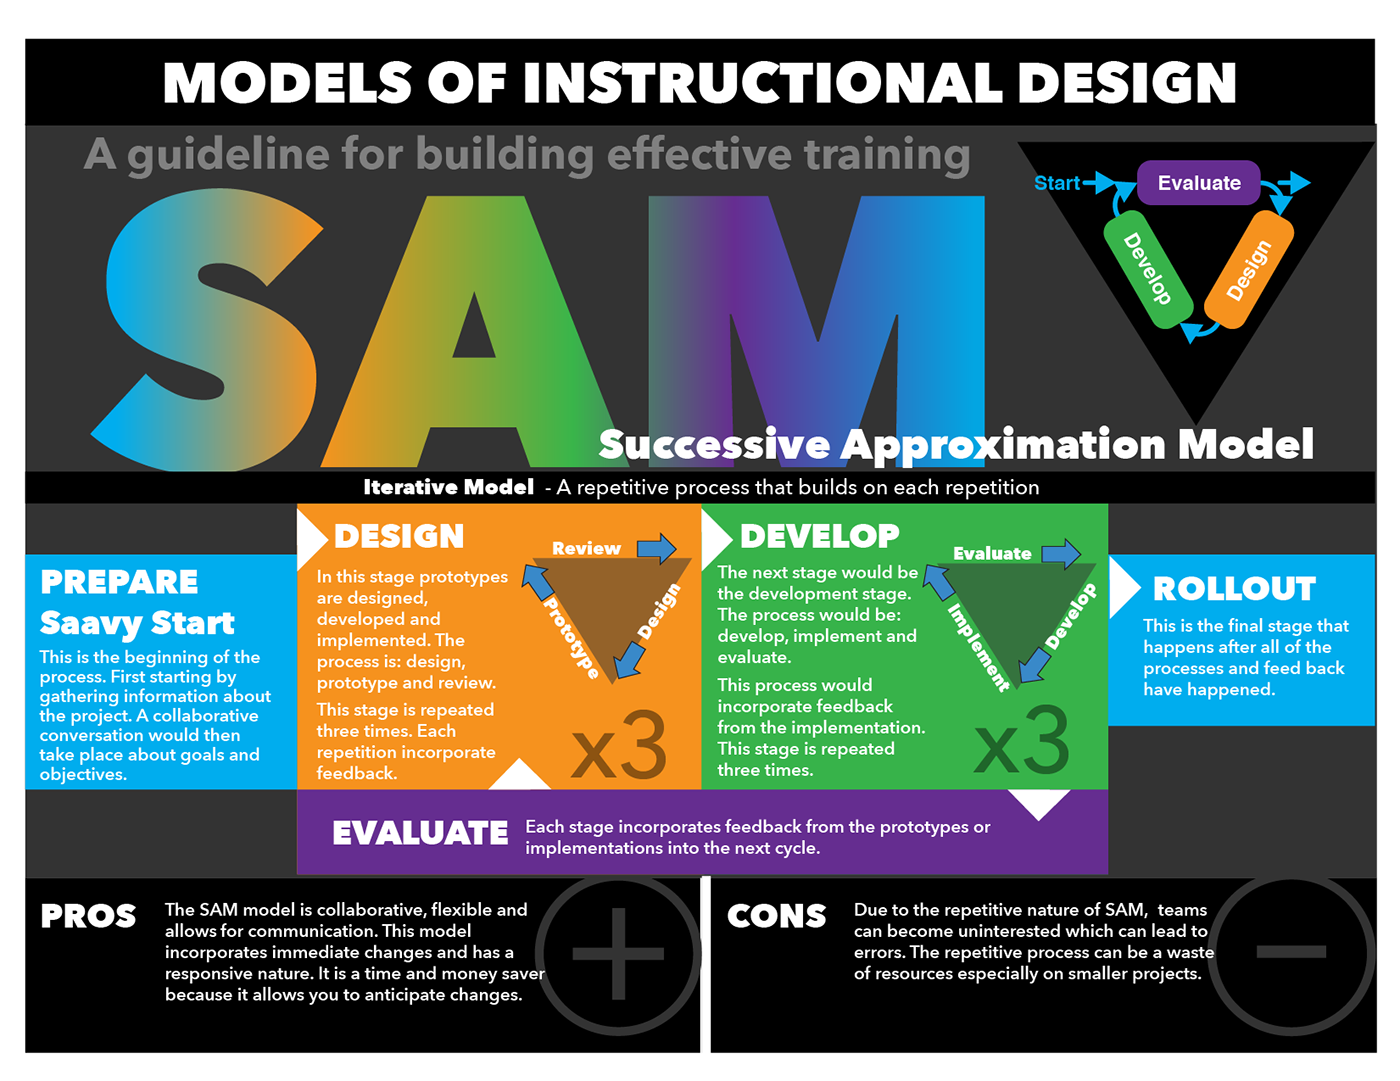 4 models of instruction